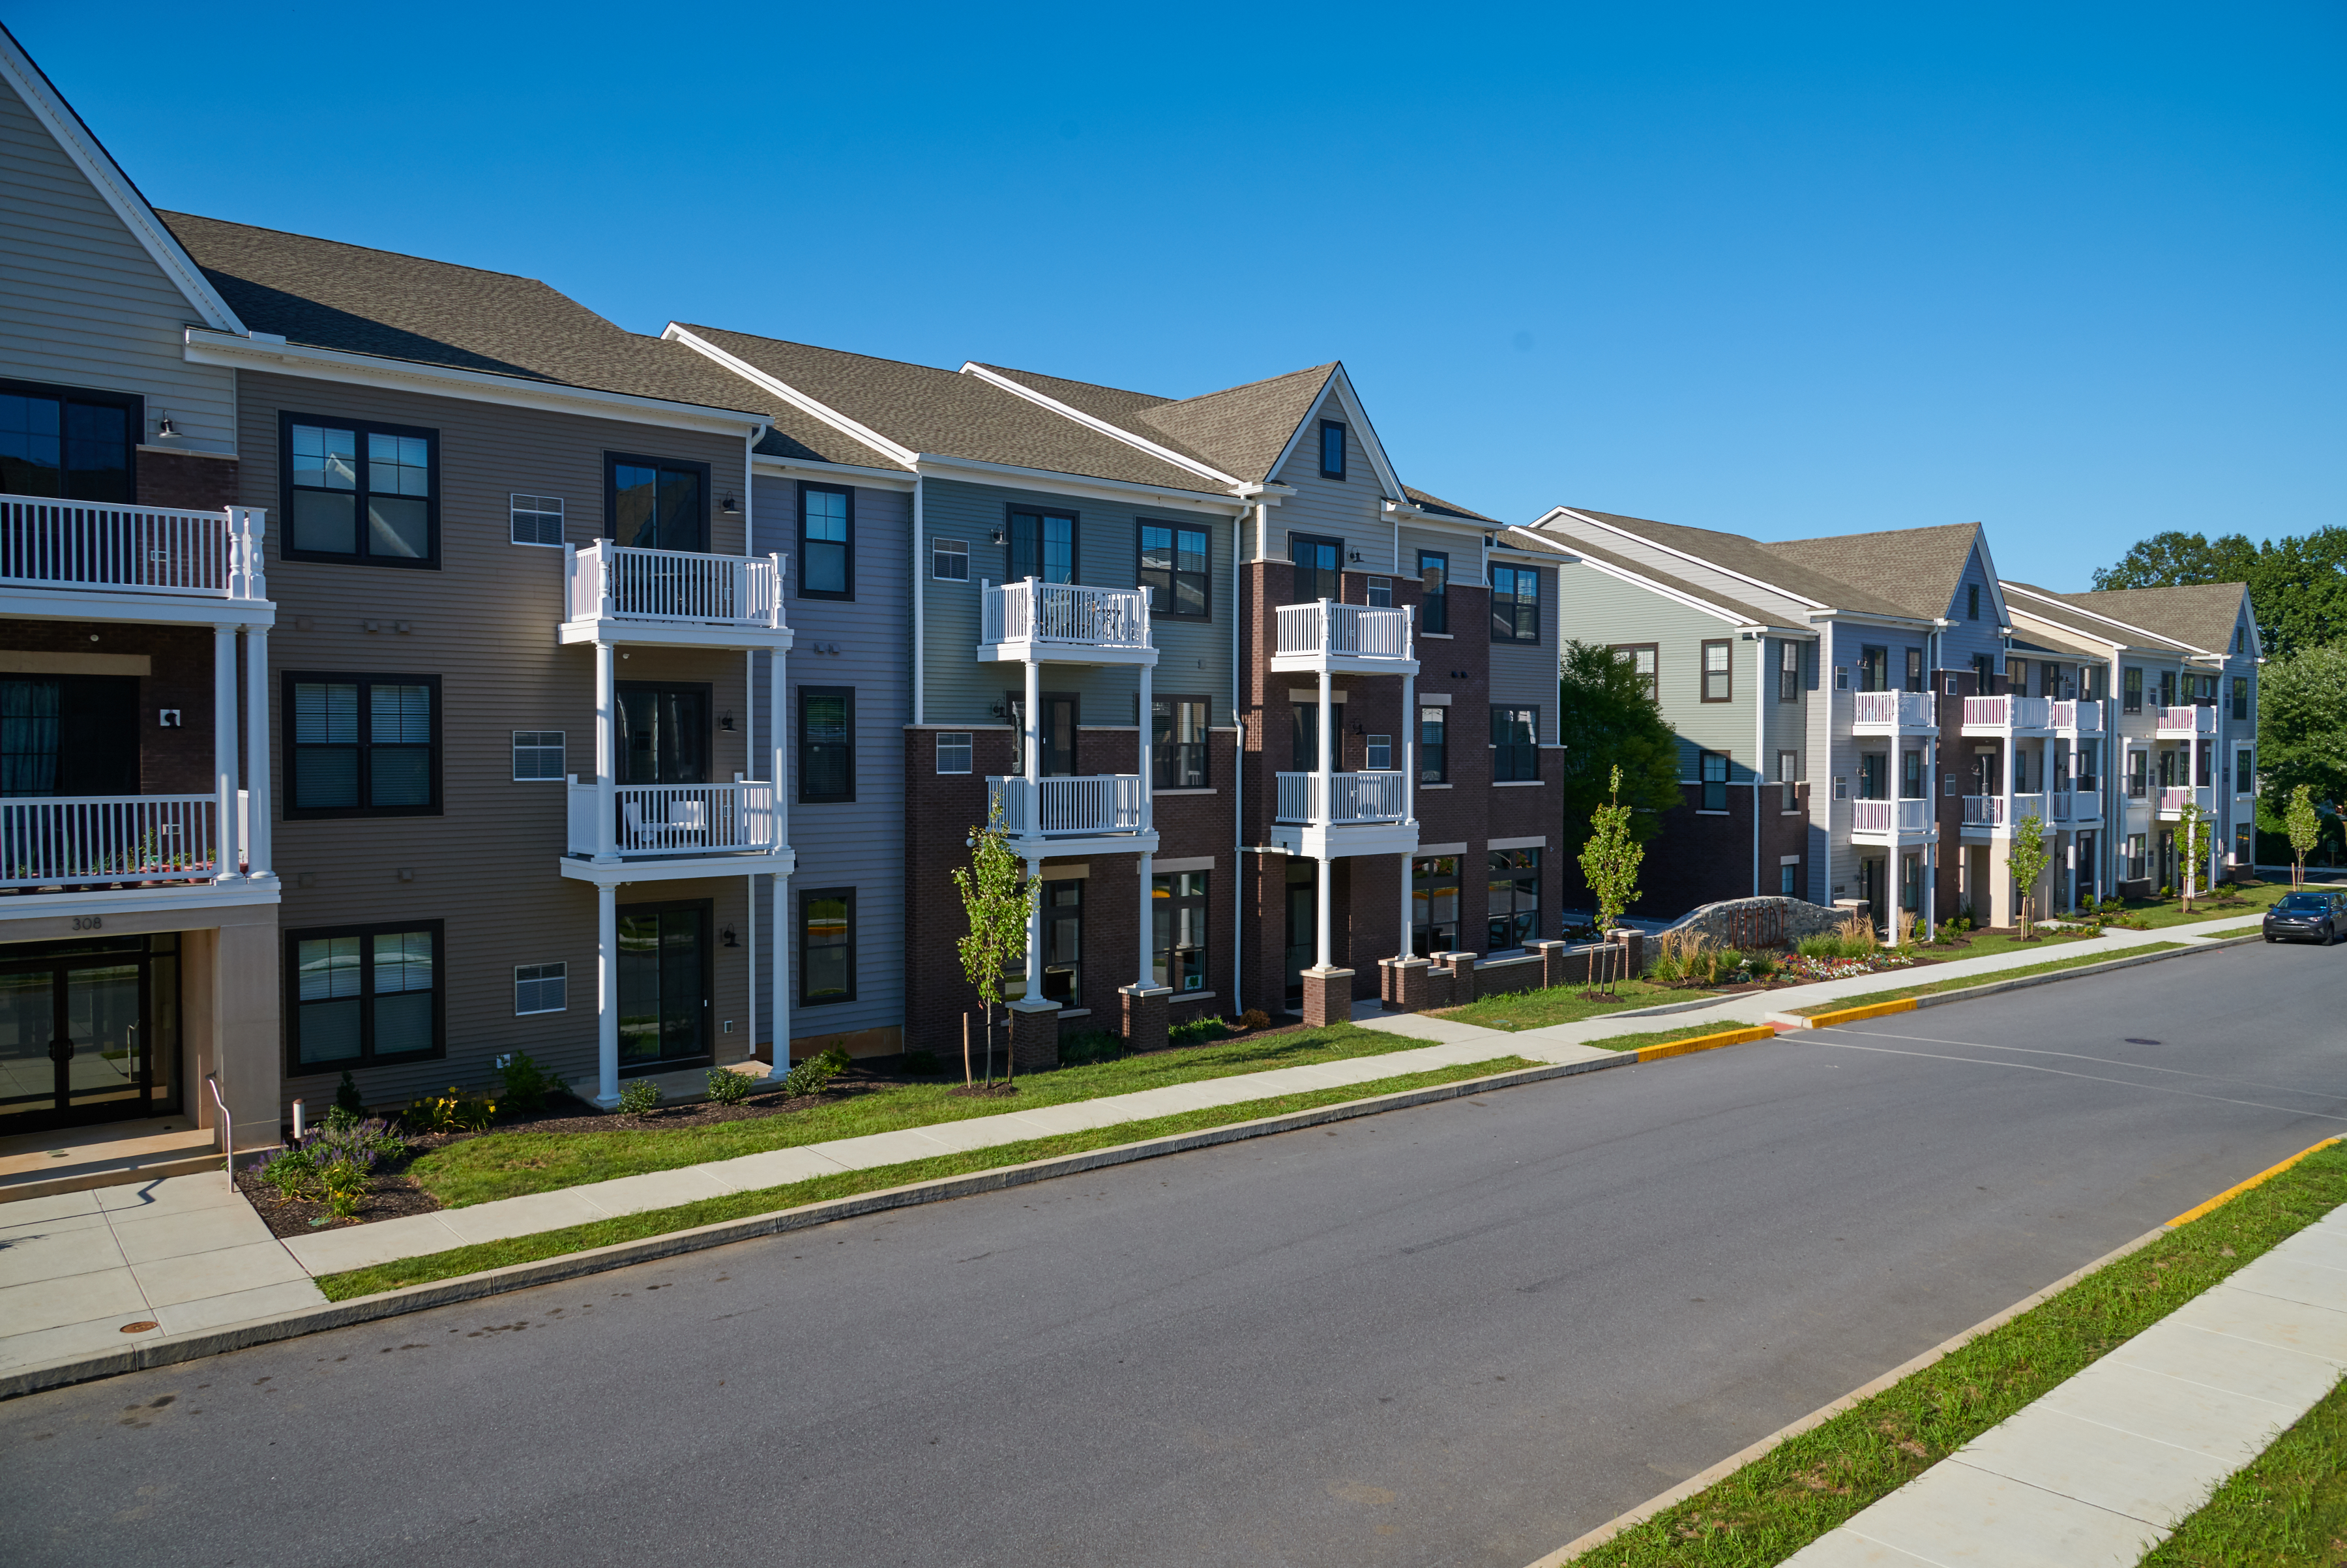 Exterior of Verde Apartments in Hummelstown, PA